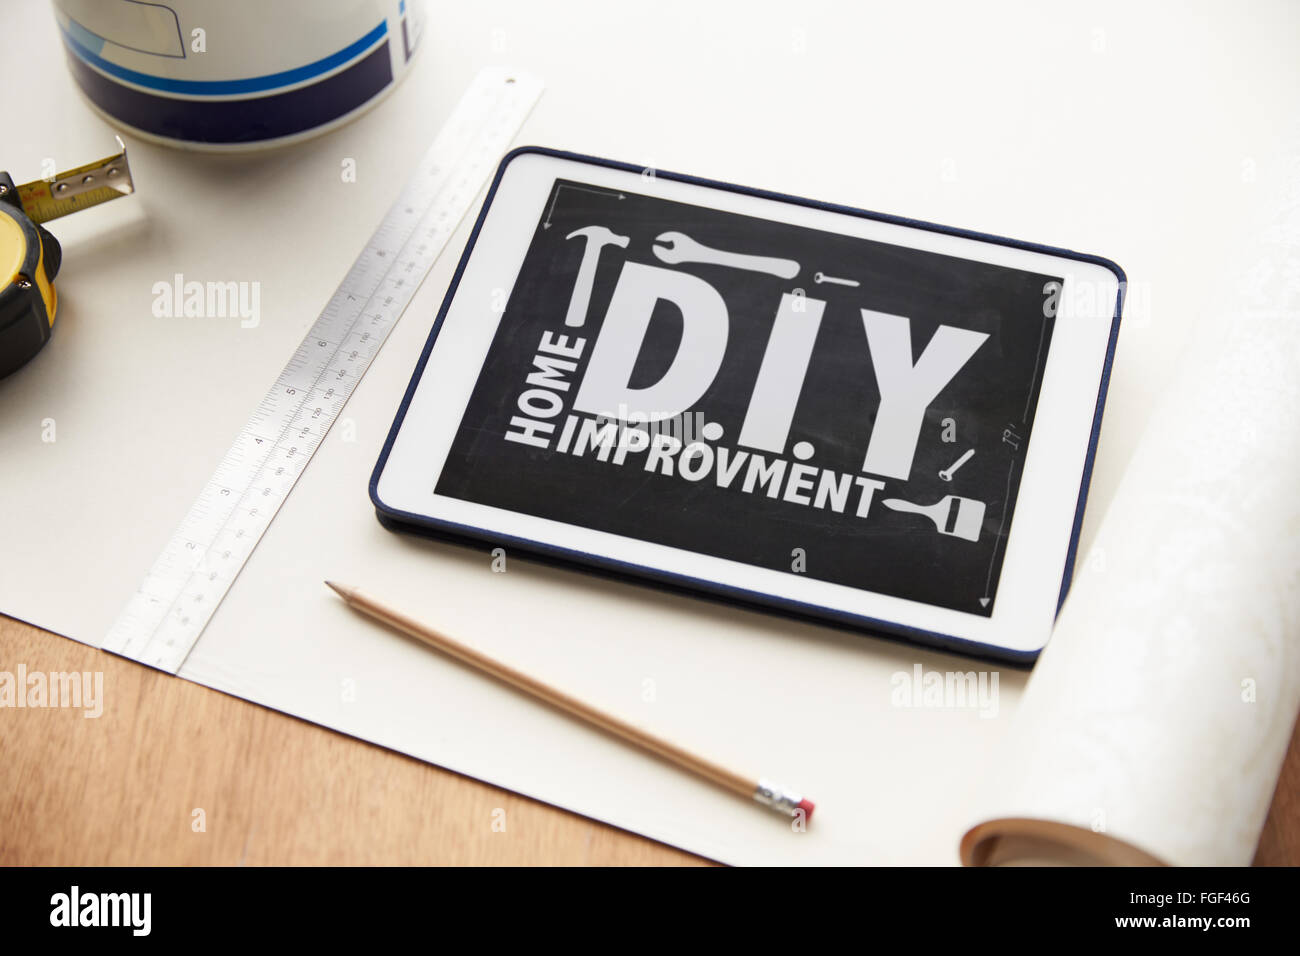 Home Improvement Application On Digital Tablet - Stock Image